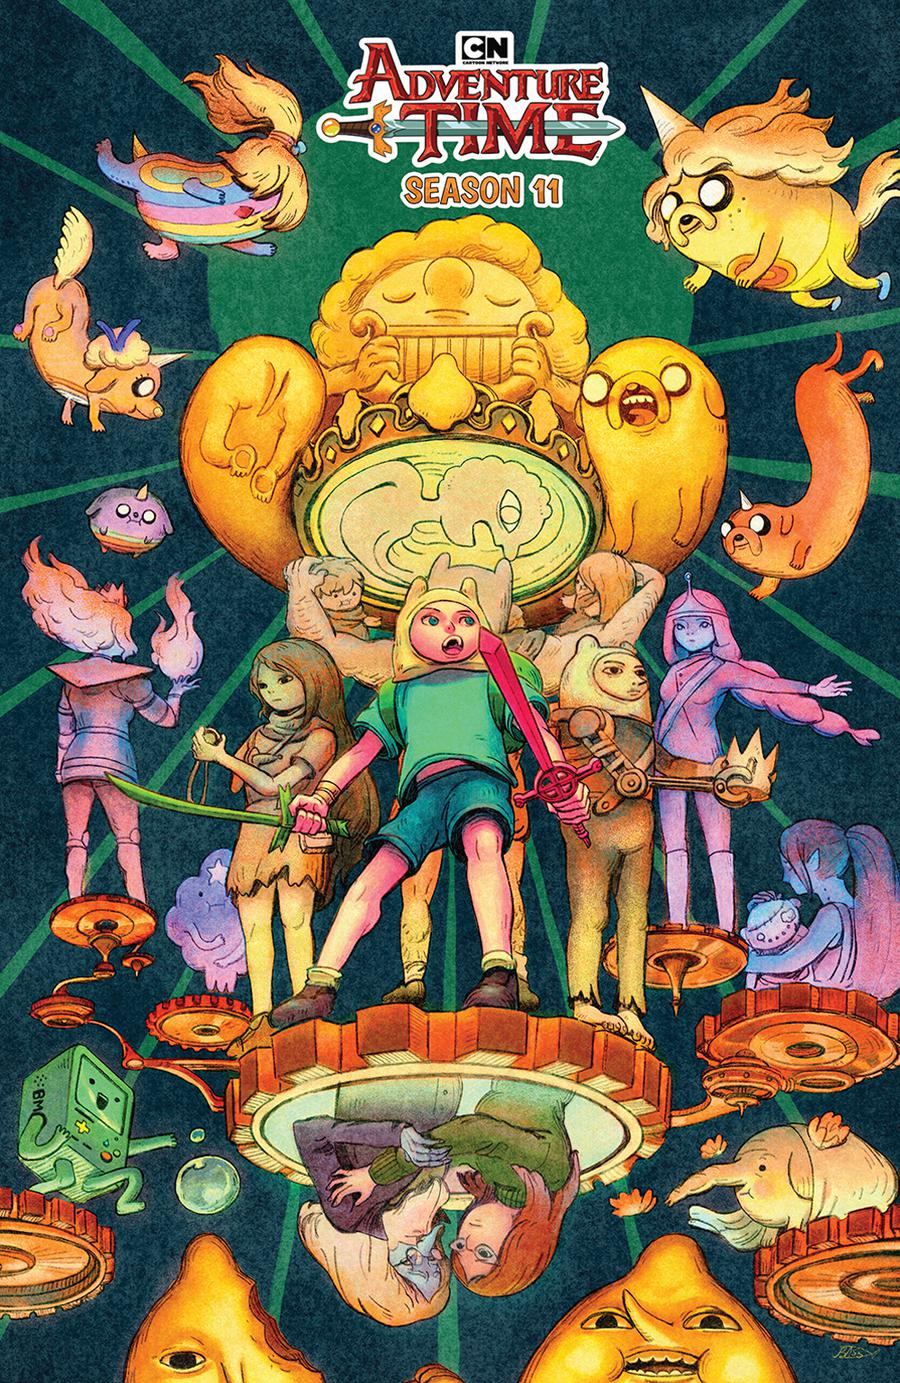 Adventure Time Season 11 #5 Cover B Variant Julie Benbassat Preorder Cover